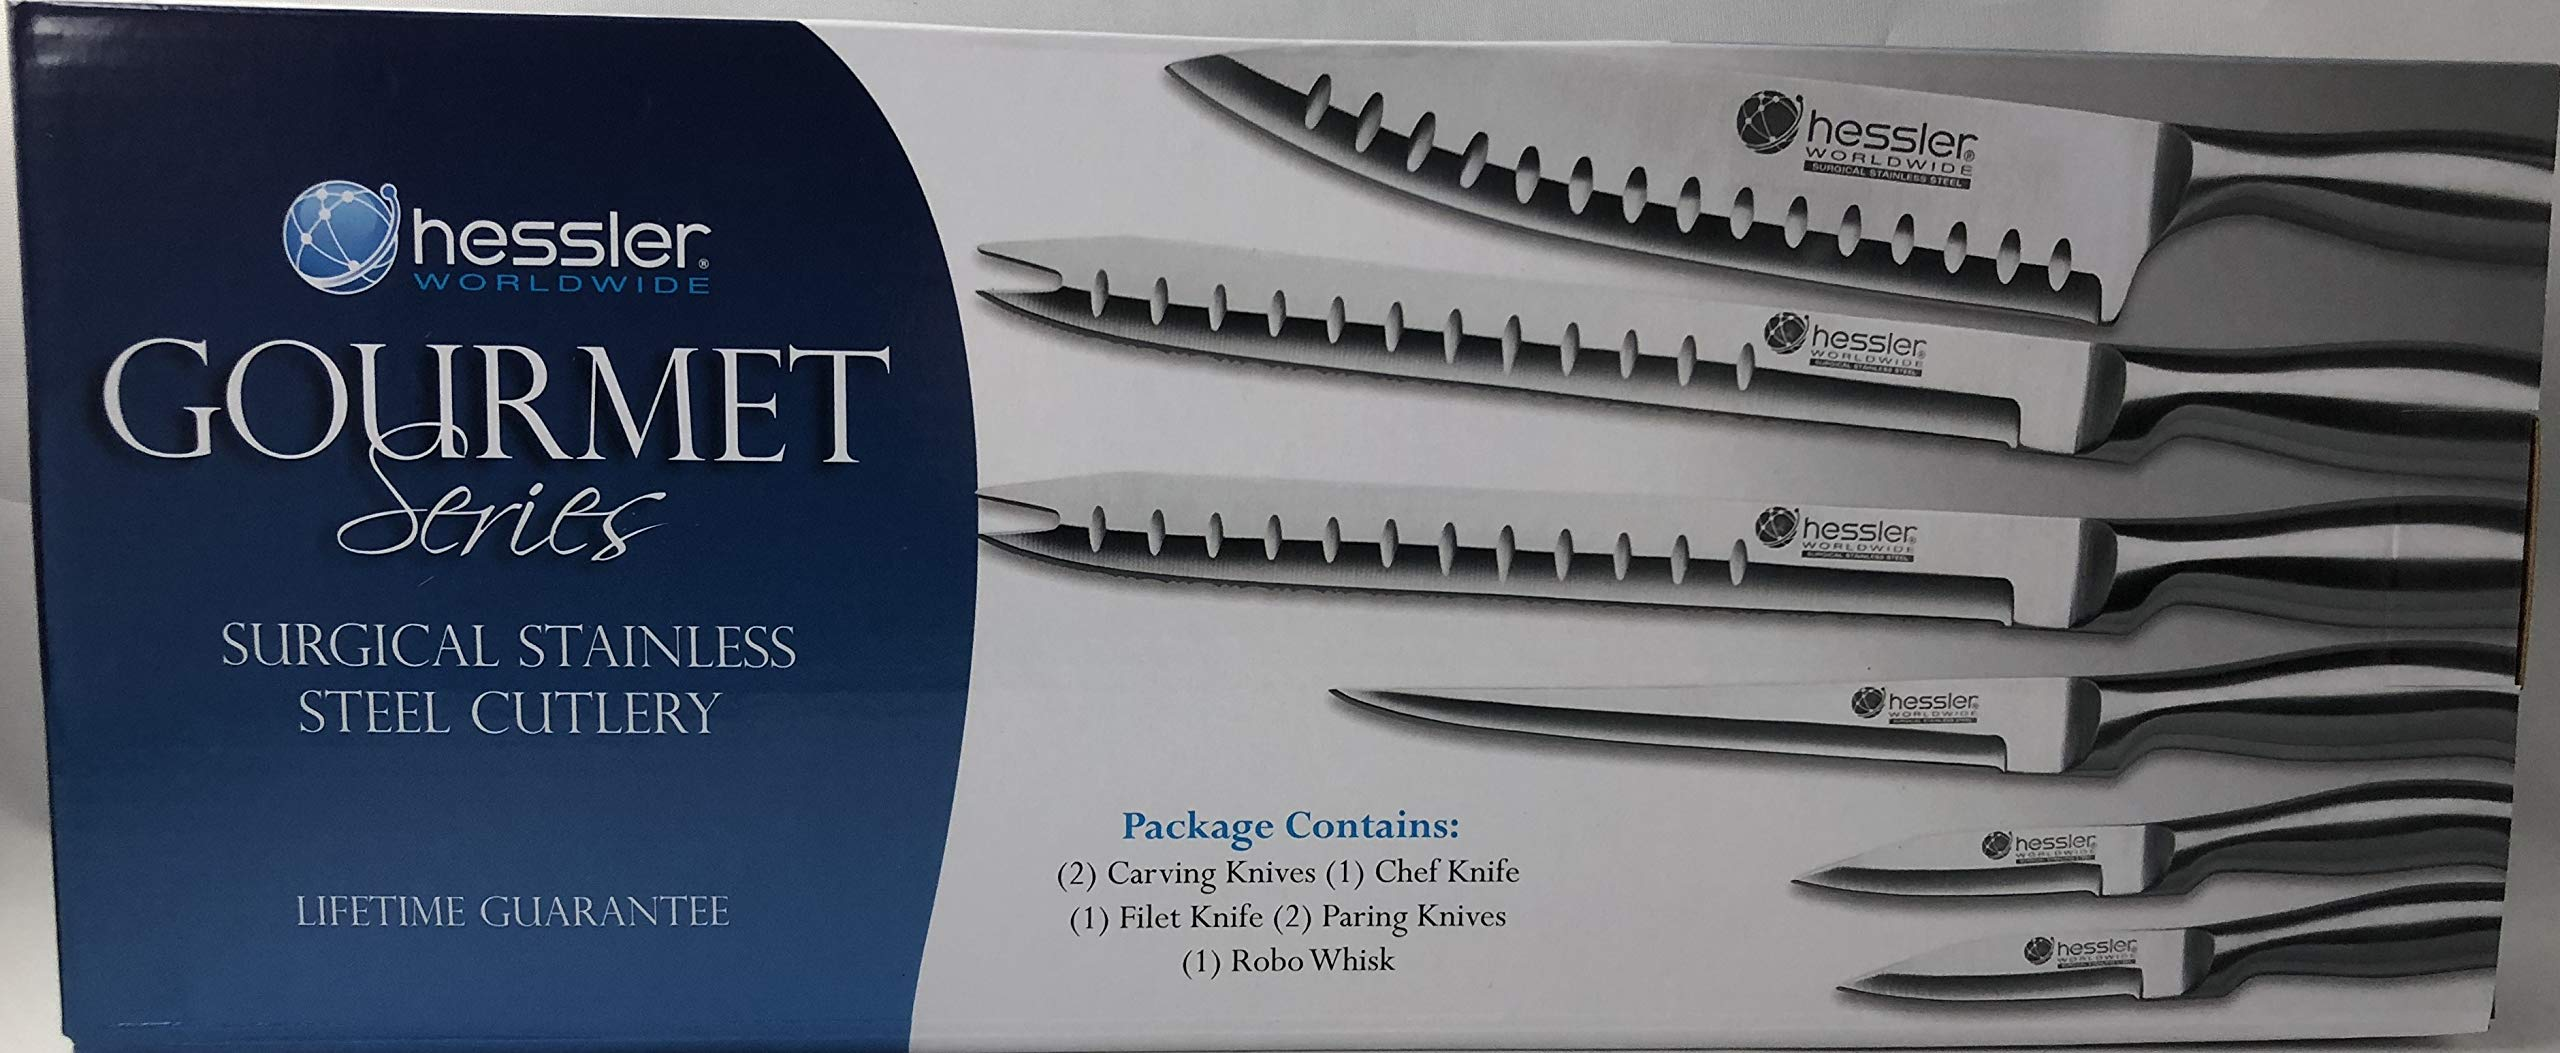 Hessler Chef Series Surgical Stainless Steel Cutlery 7 Piece Knife set